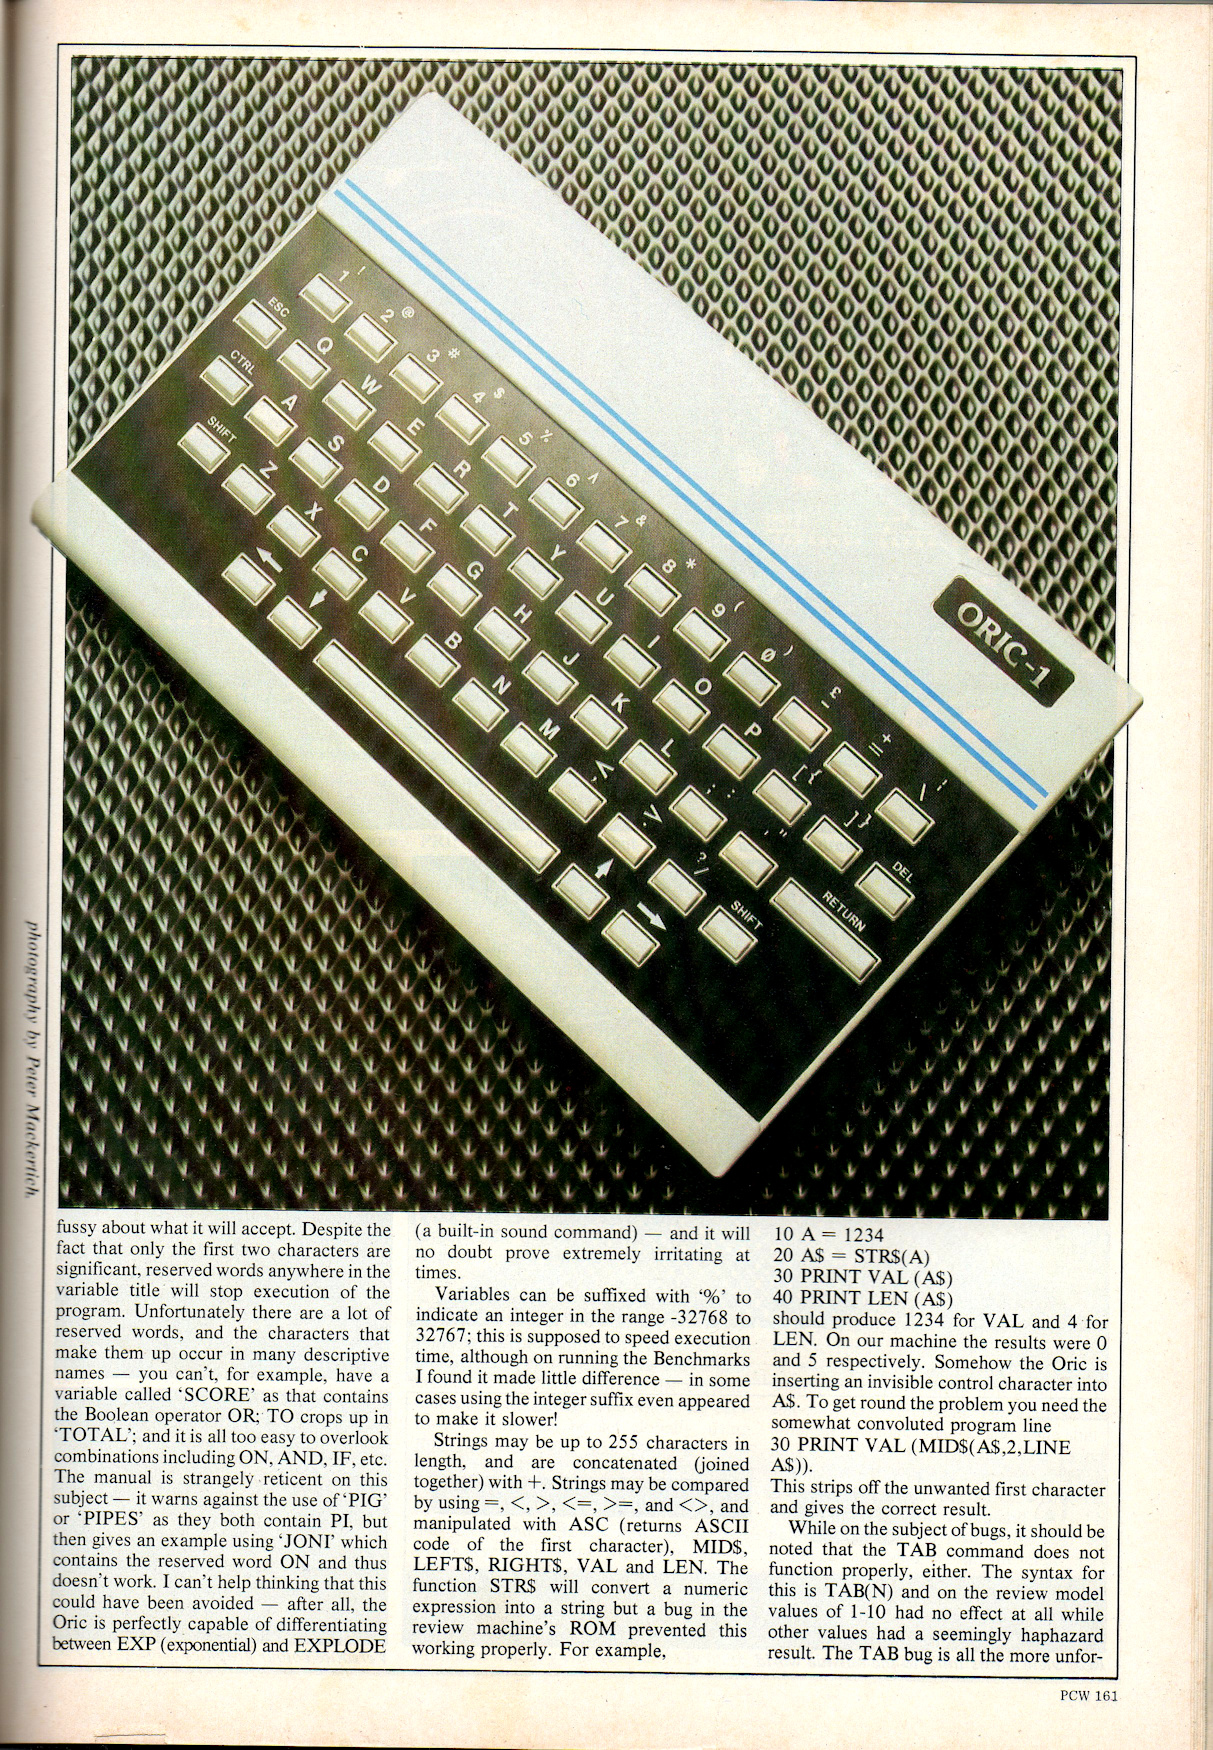 the oric1 pcw002.jpg